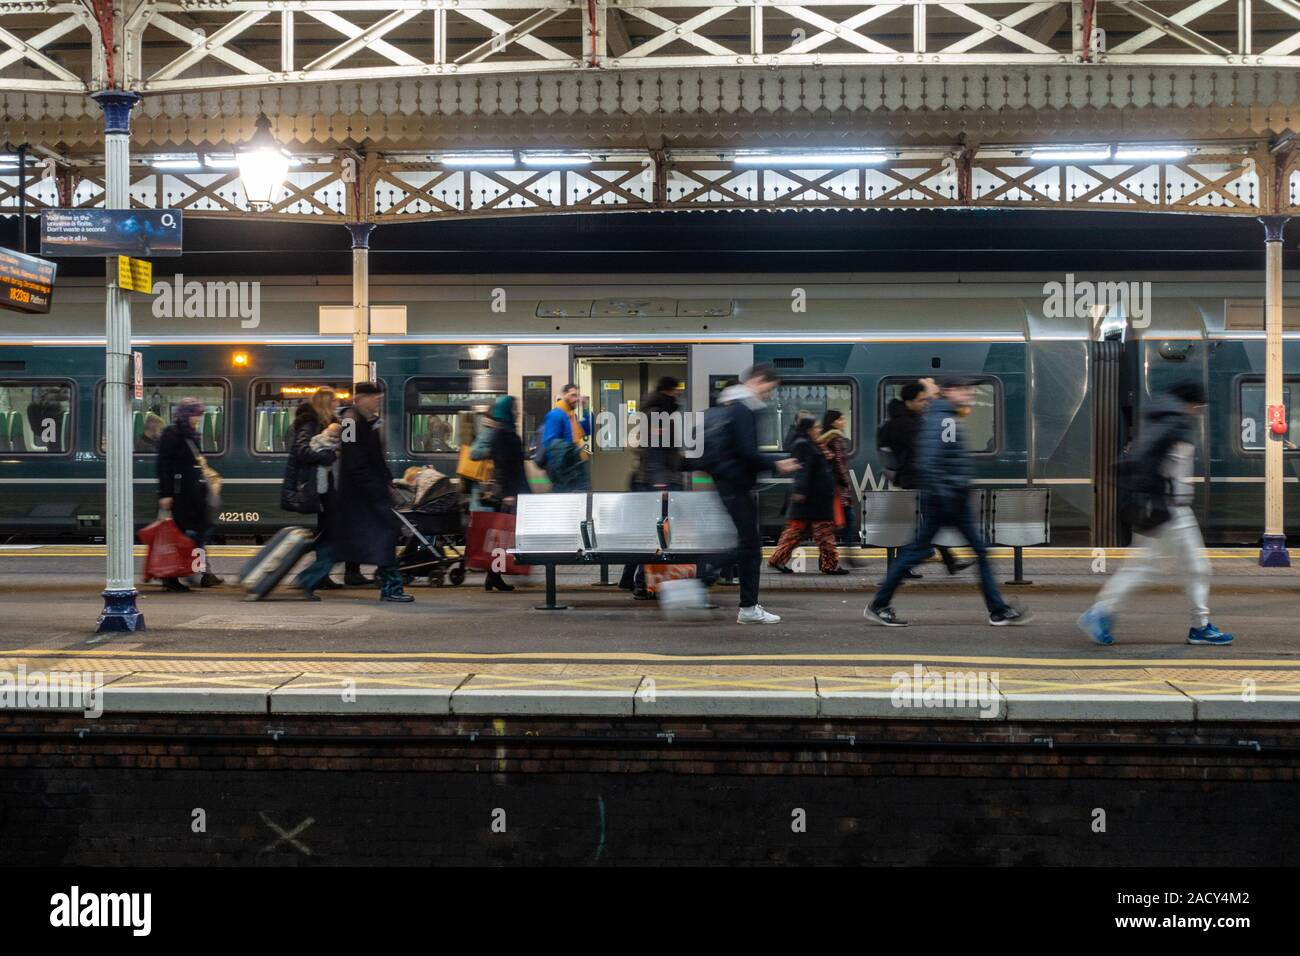 passengers-hurry-along-the-platform-at-slough-railway-station-having-just-got-off-a-late-arrival-into-slough-2ACY4M2.jpg